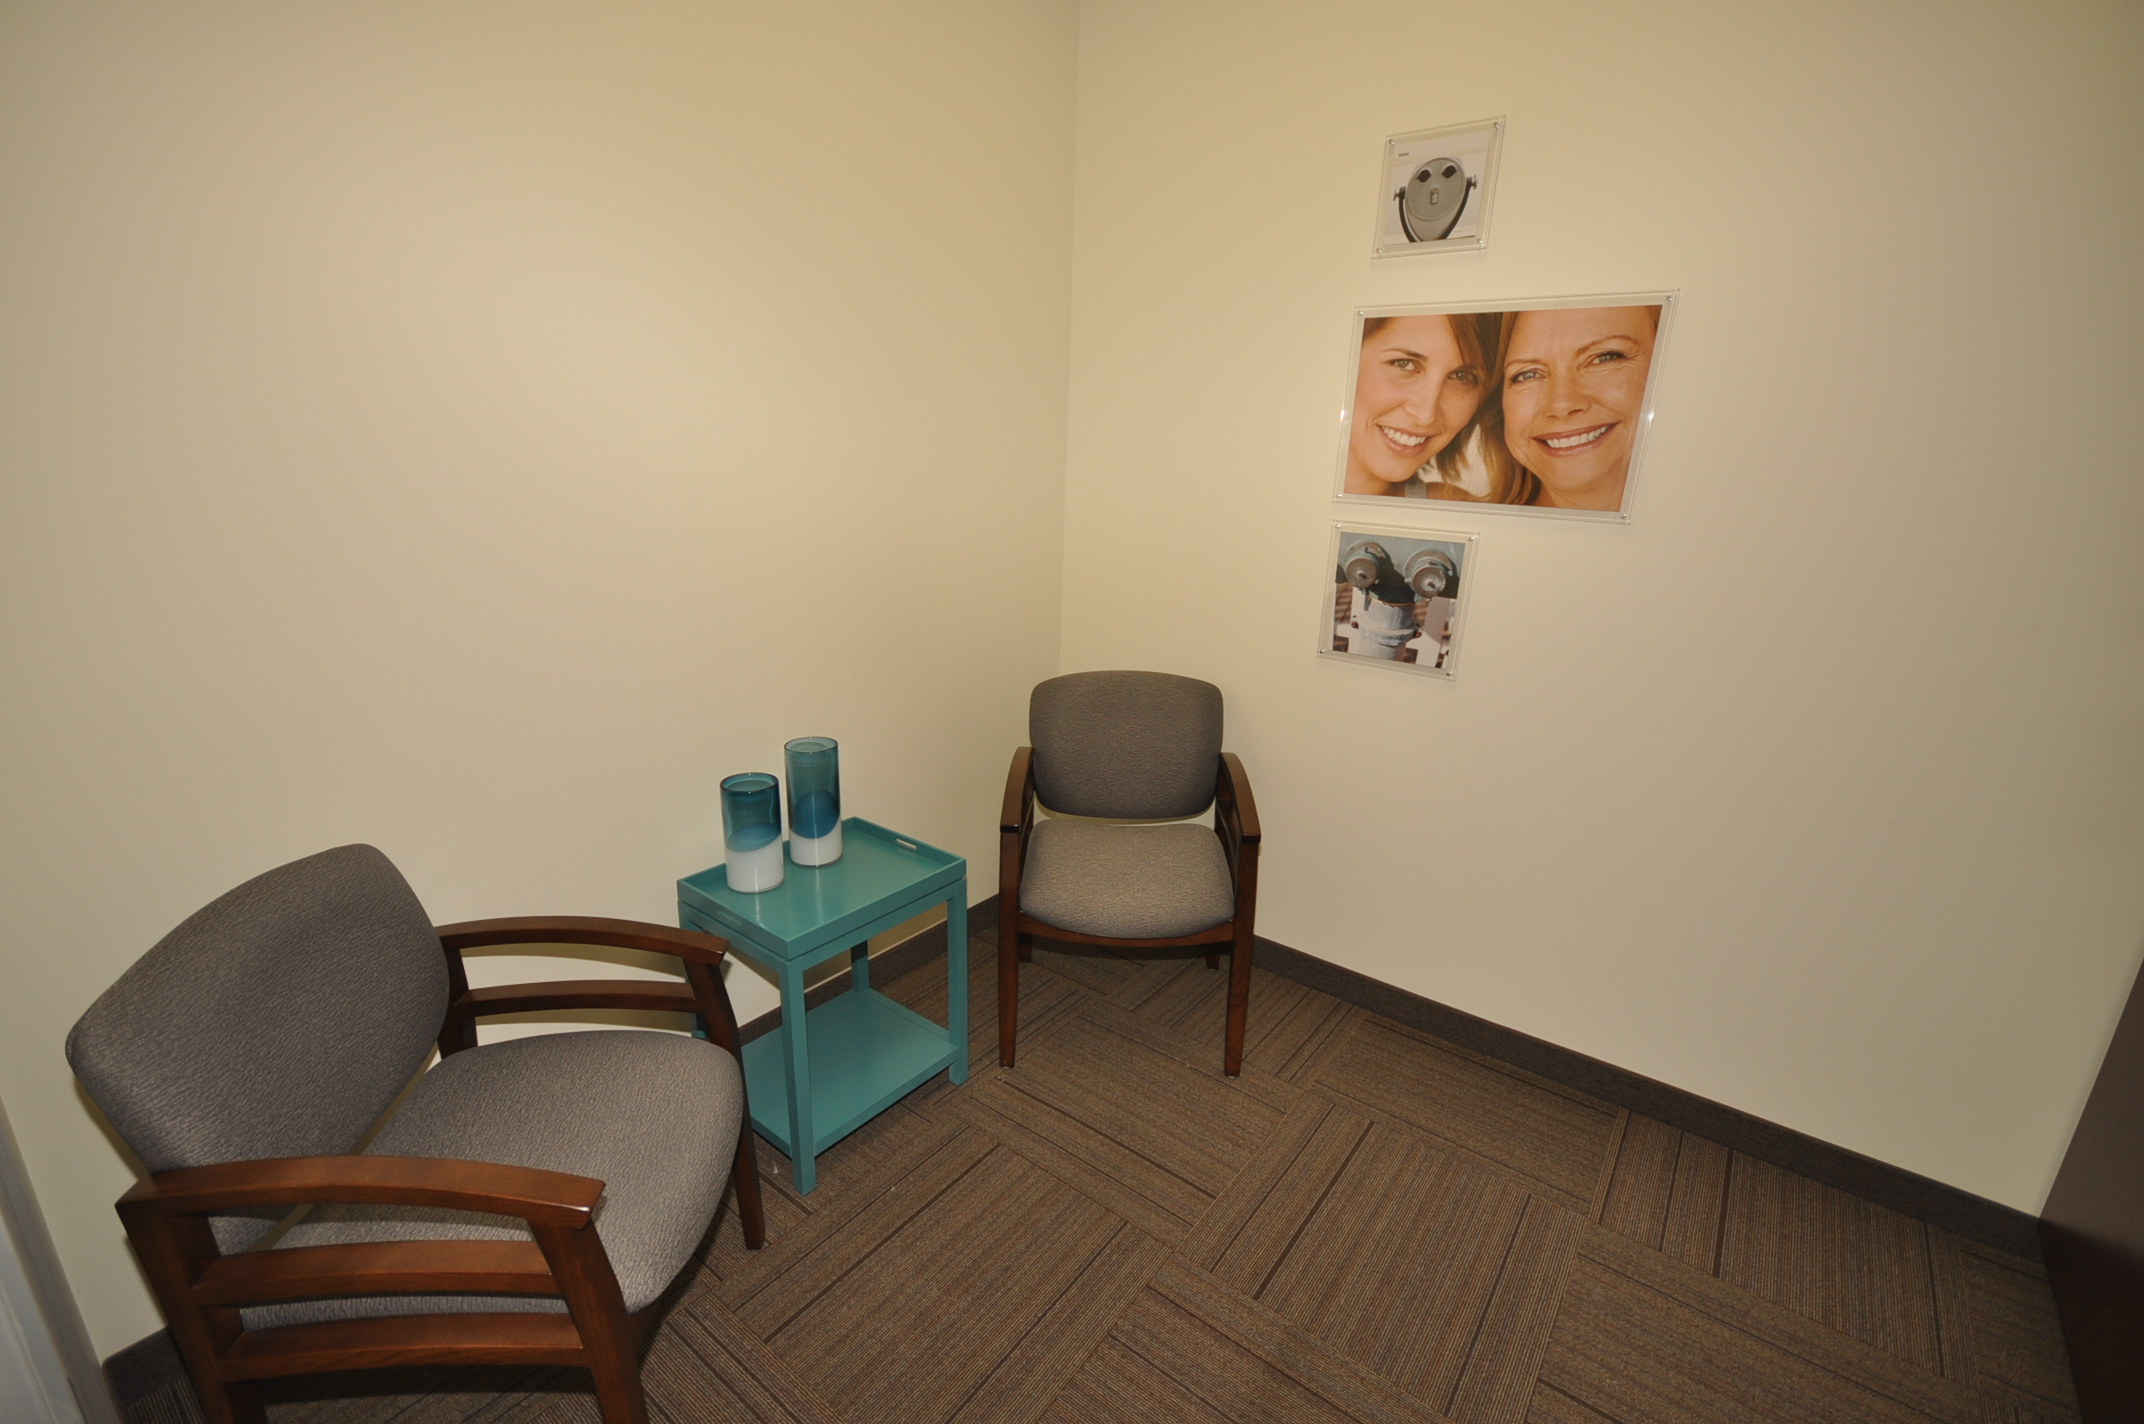 Pearland Dentists image 4